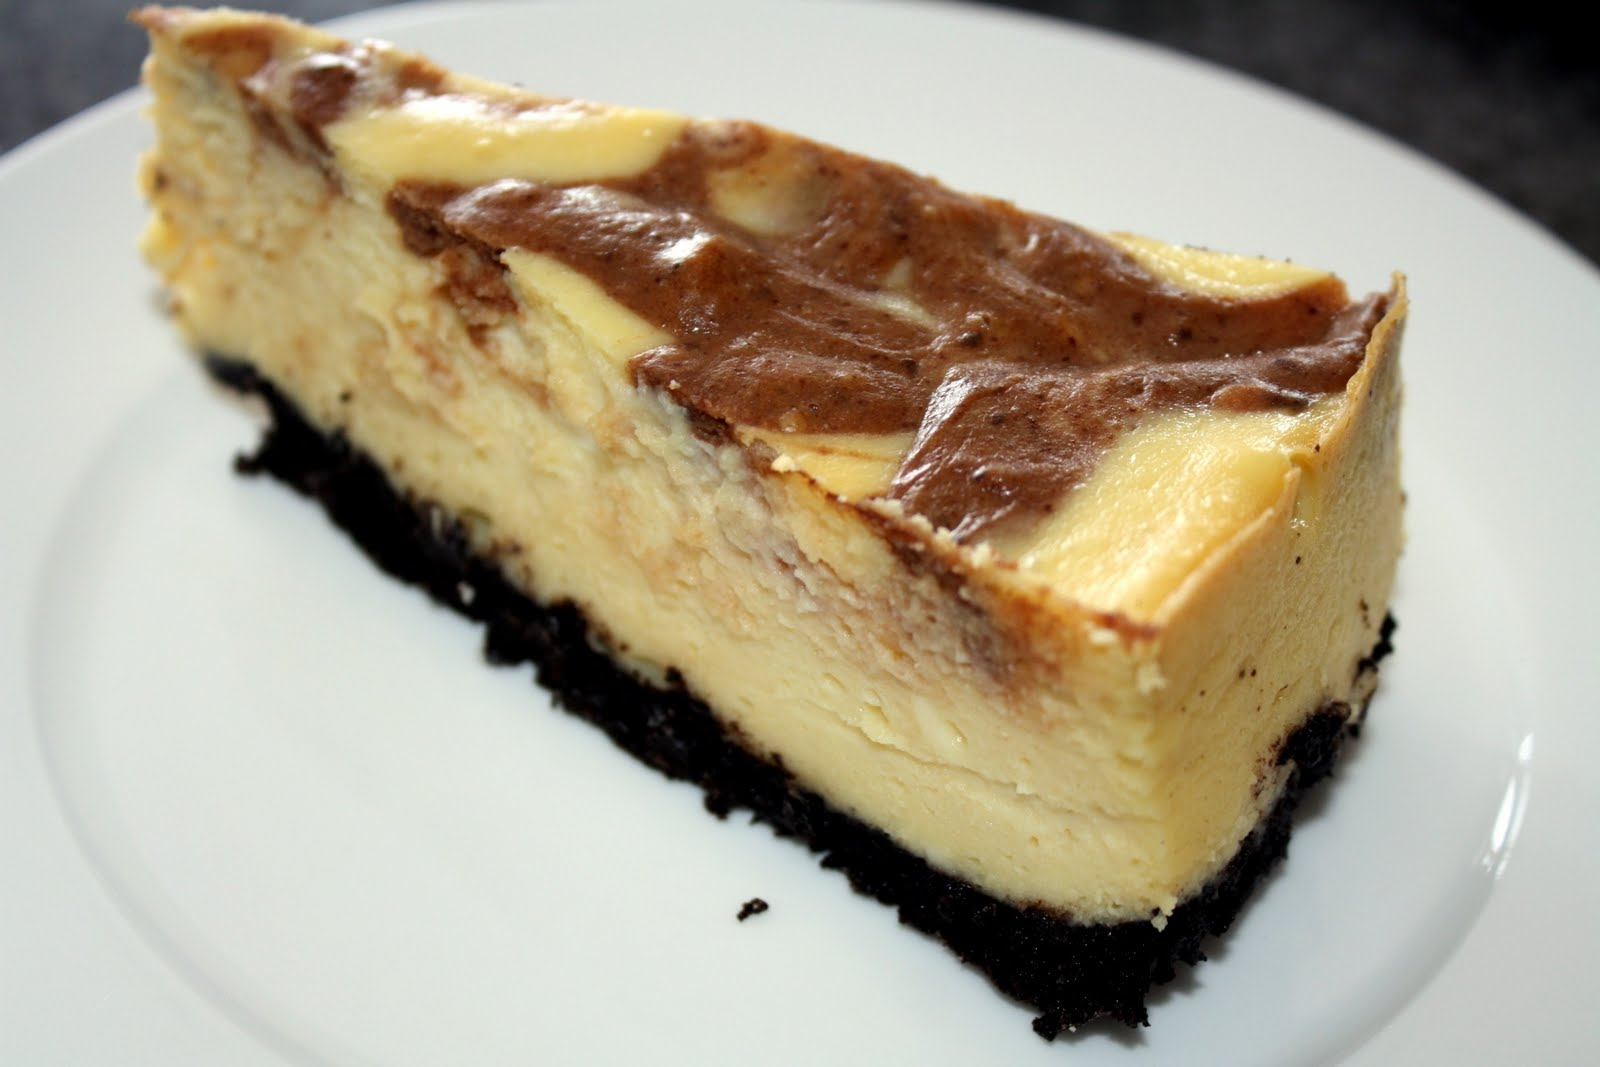 Chocolate Marble Cheesecake Chocolate marble cheesecake